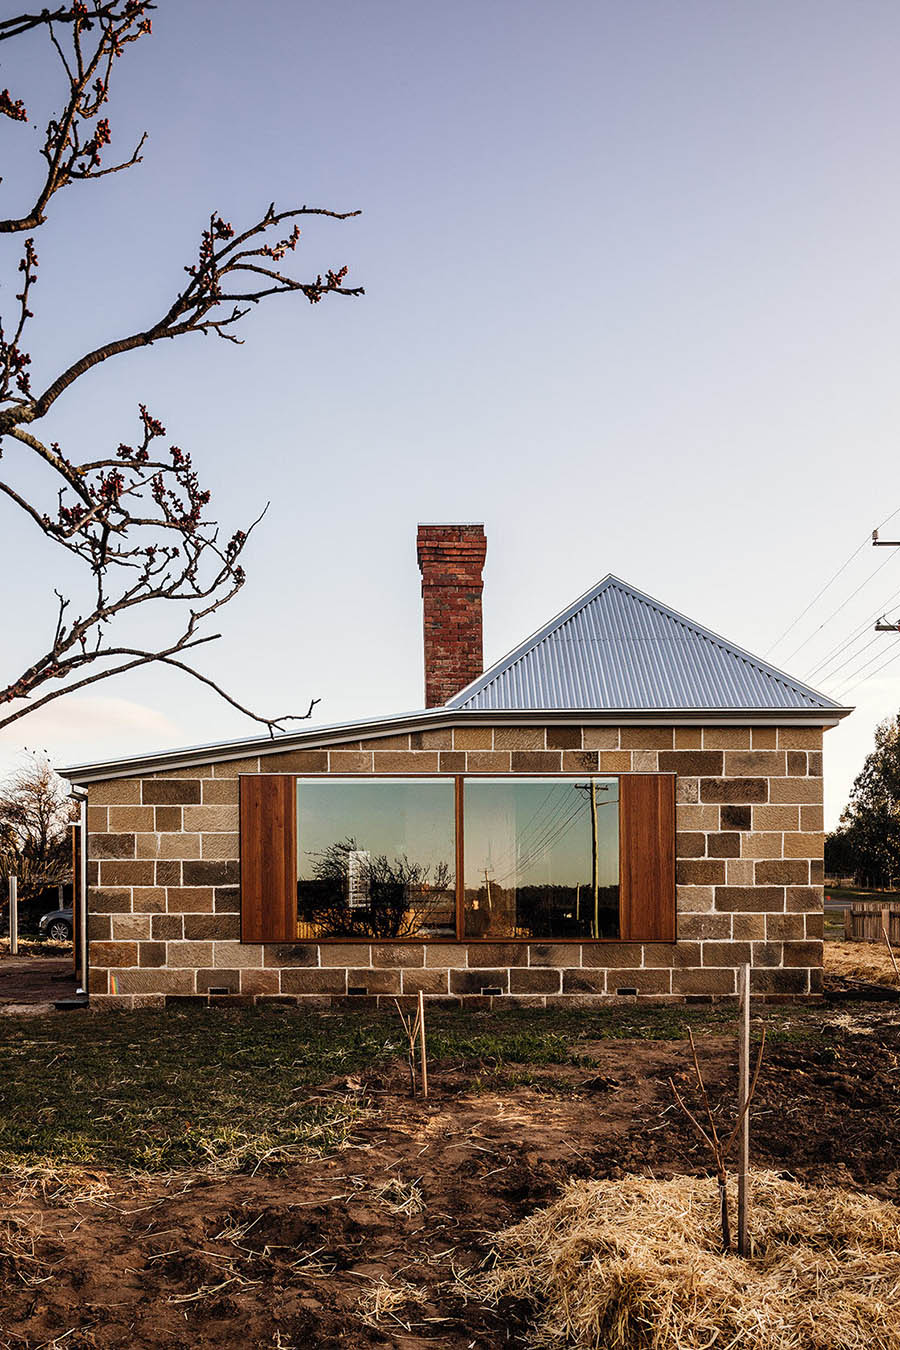 Bozen's Cottage by Taylor + Hinds Architects